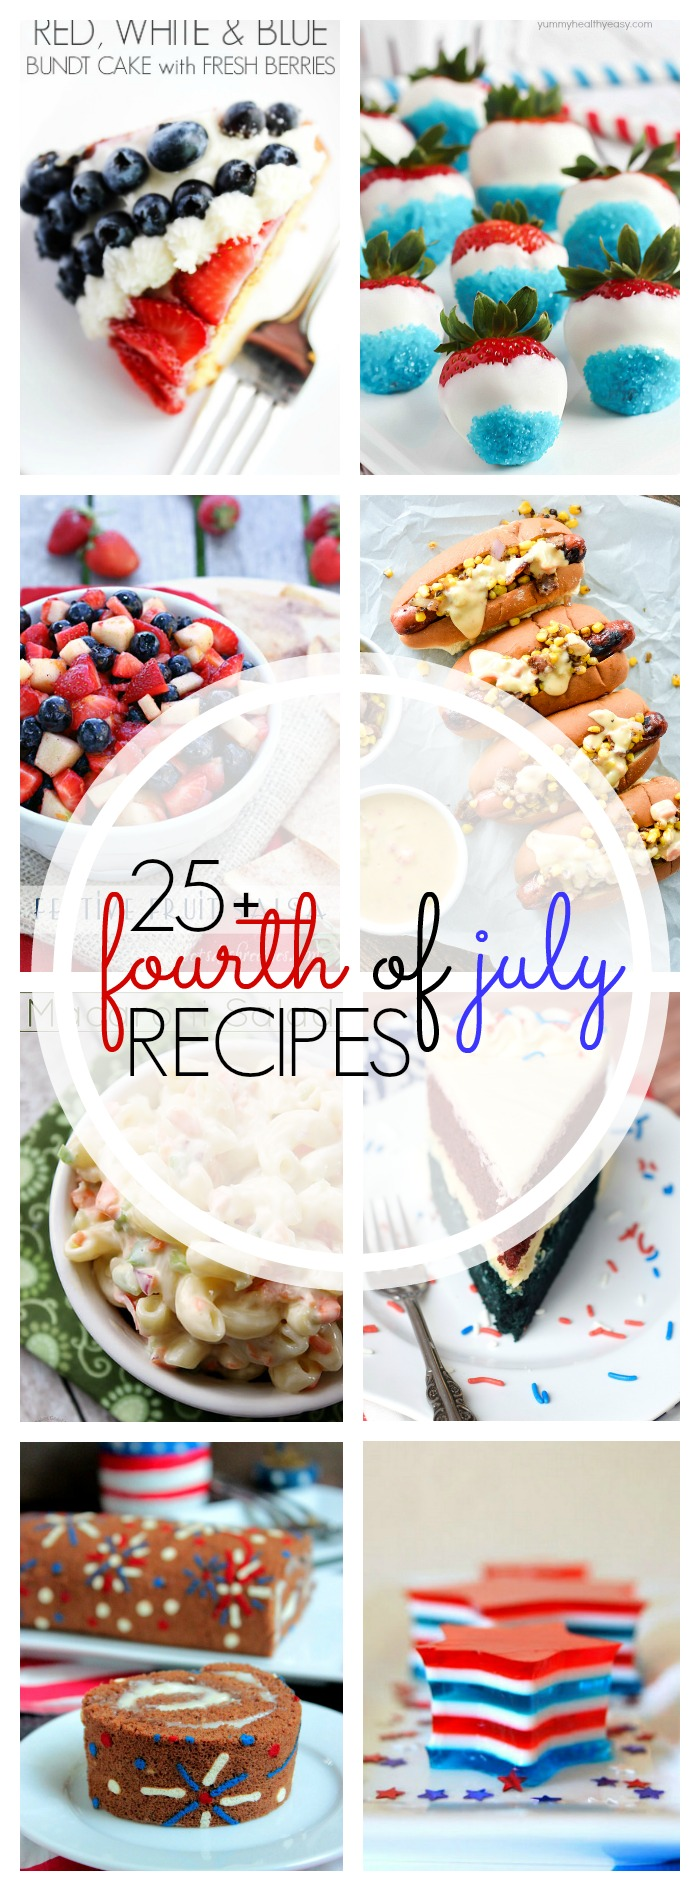 25+ Amazing Recipes for the 4th of July